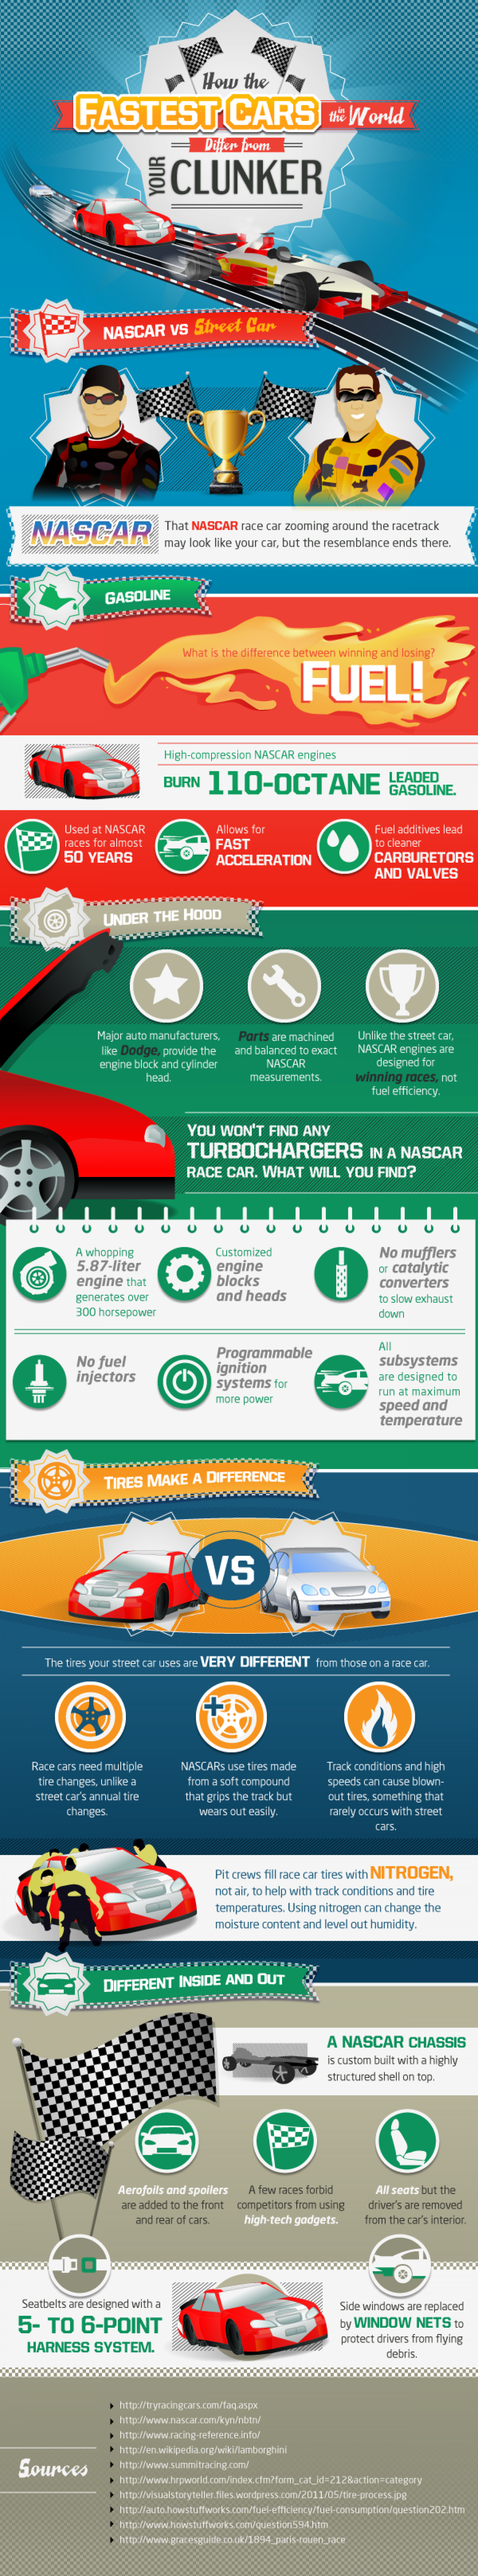 Hows The Fastest Cars  In The World Differ From Your Clunker Infographic